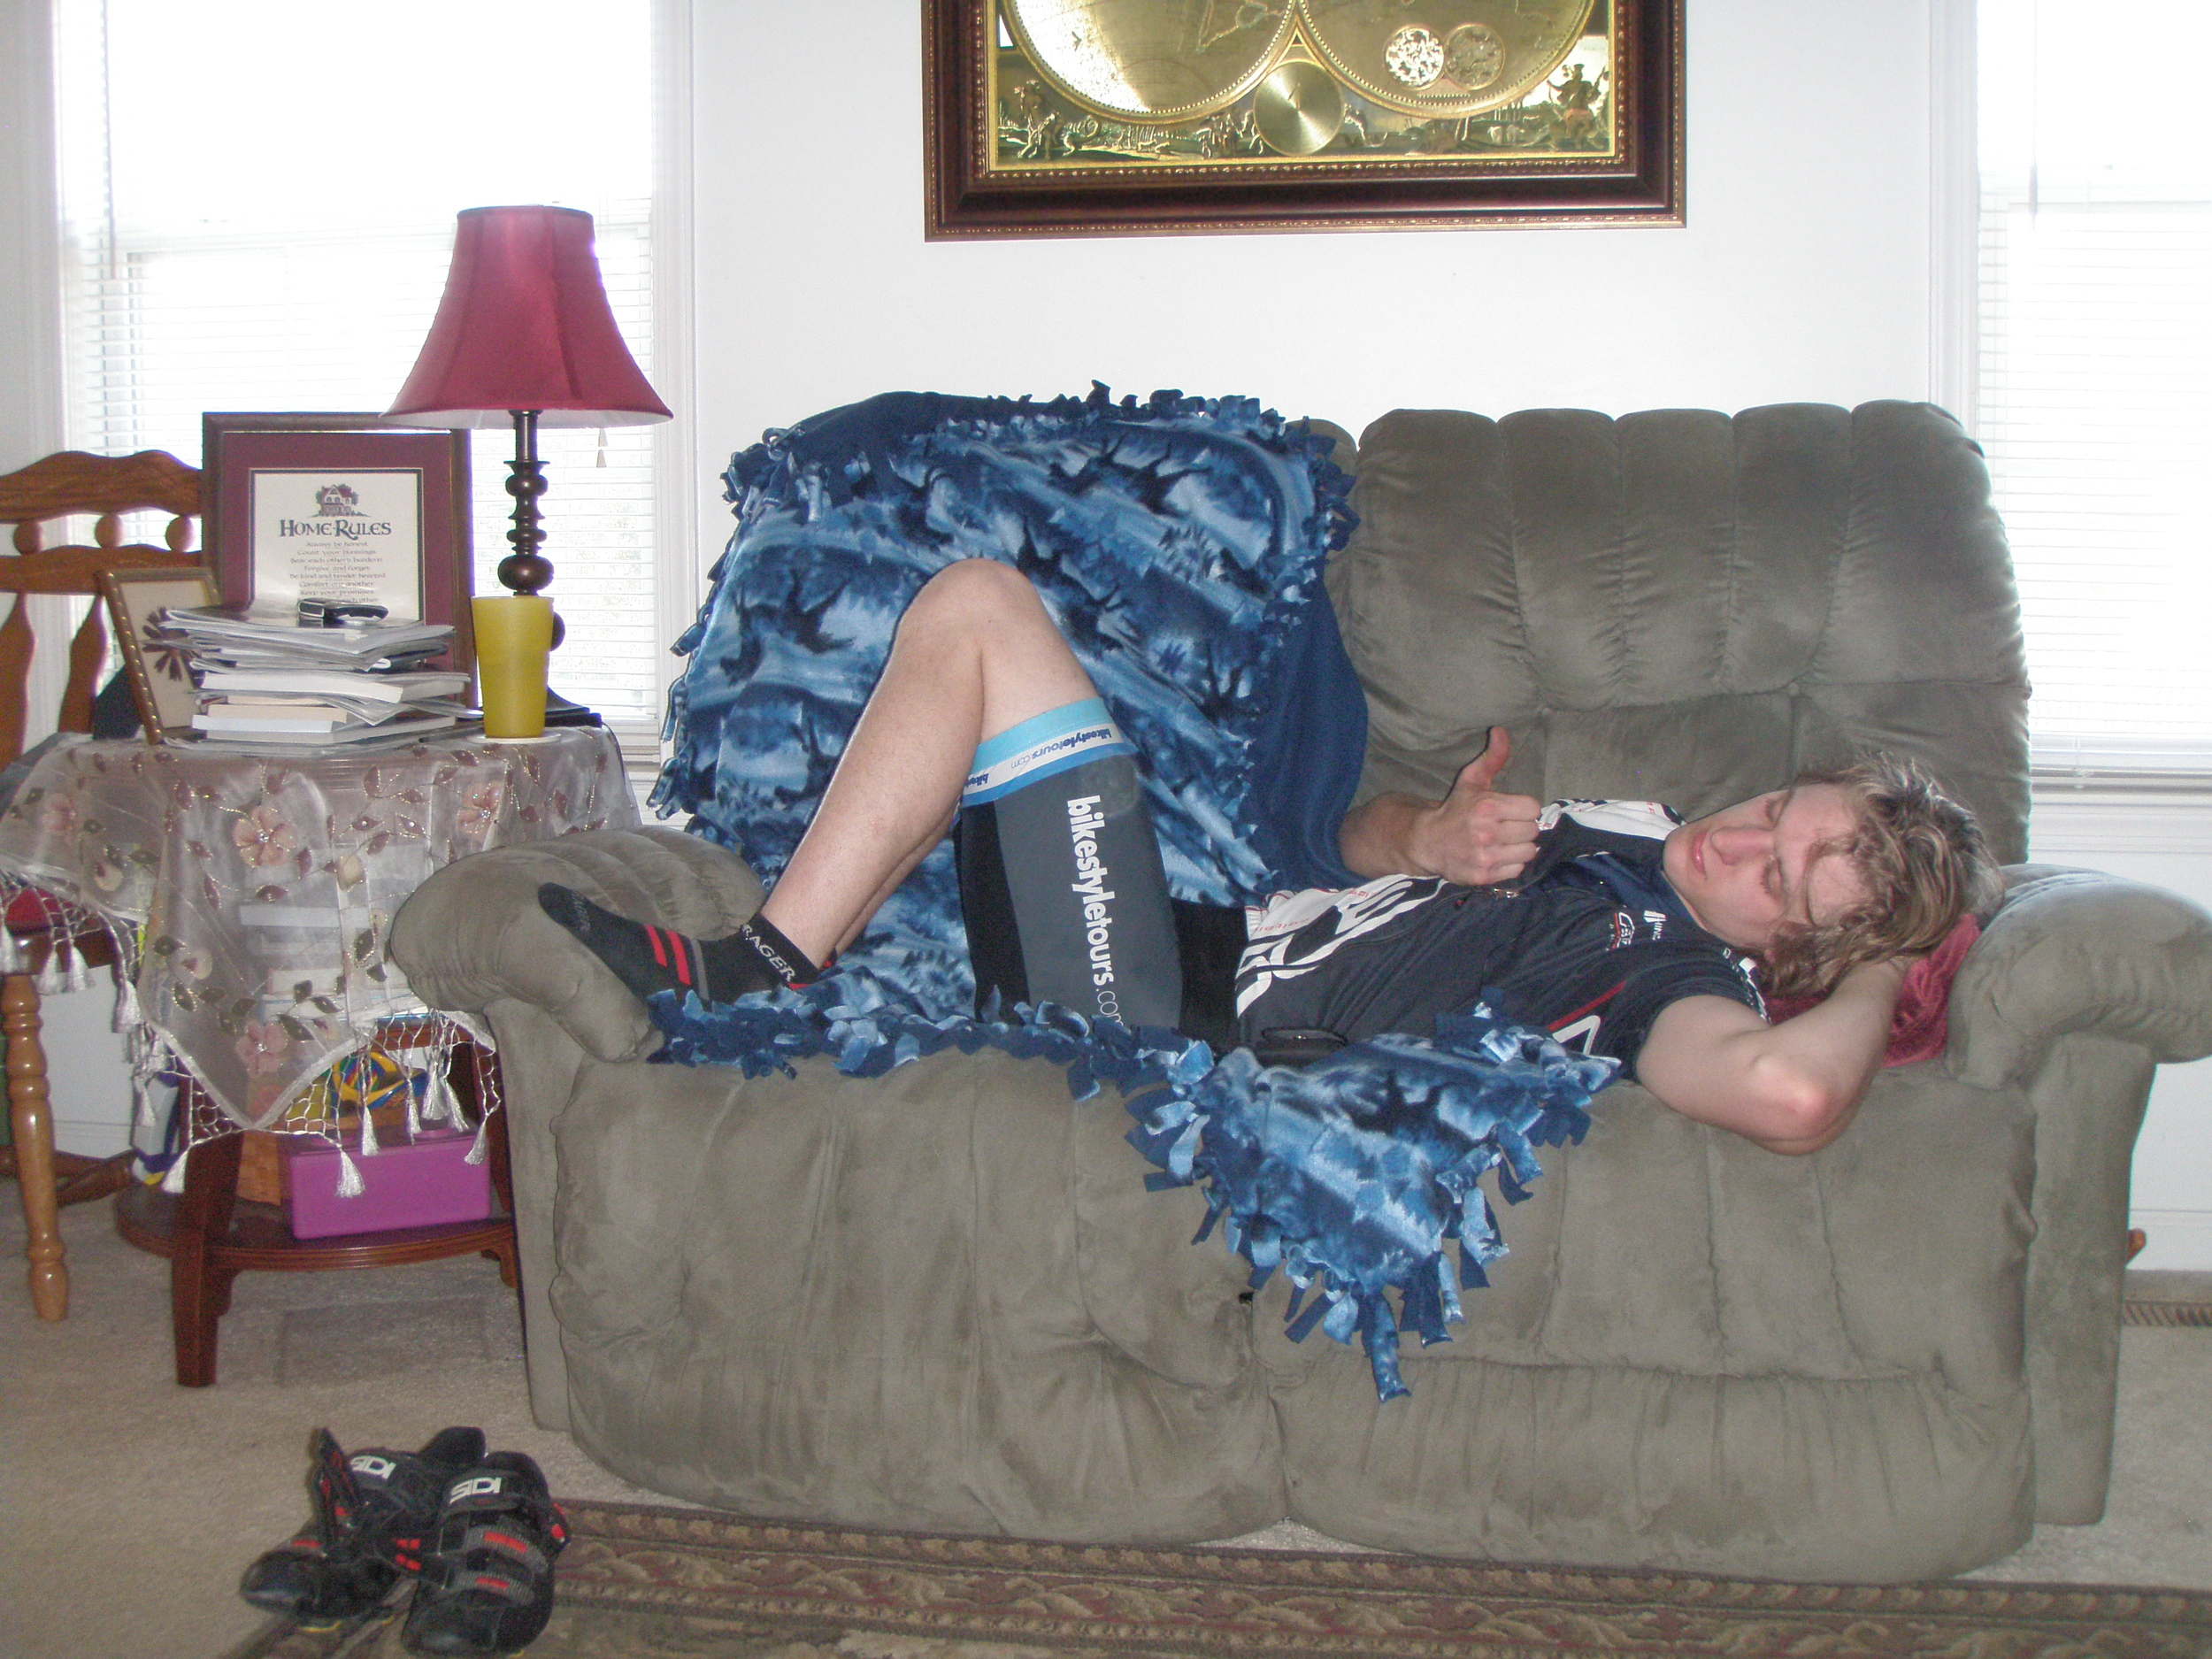 Post ride chillen, I was not going to leave this couch for a little while.